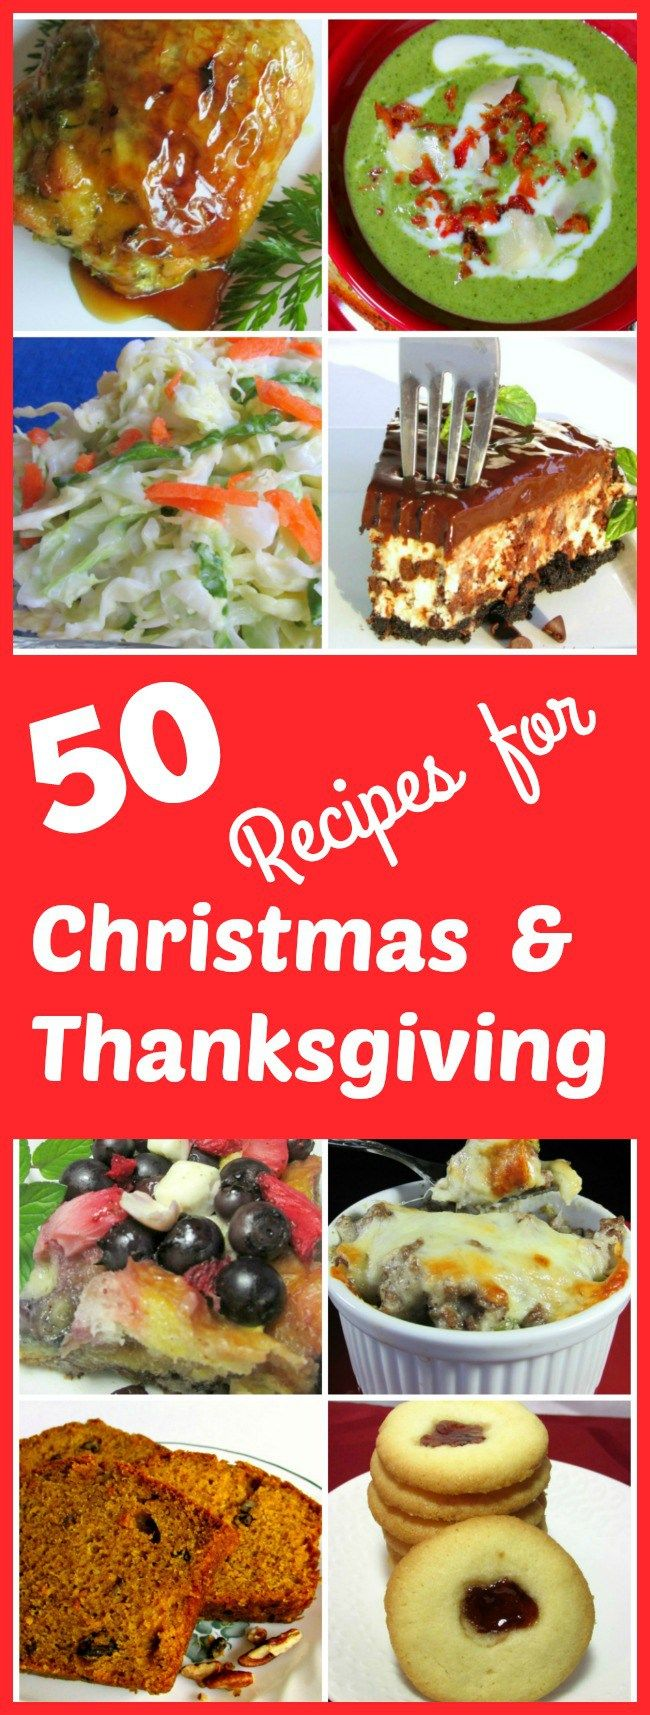 50 Recipes for the Thanksgiving and Christmas Table. Need some new recipes? Here are some that are sure to become your new family favorites.